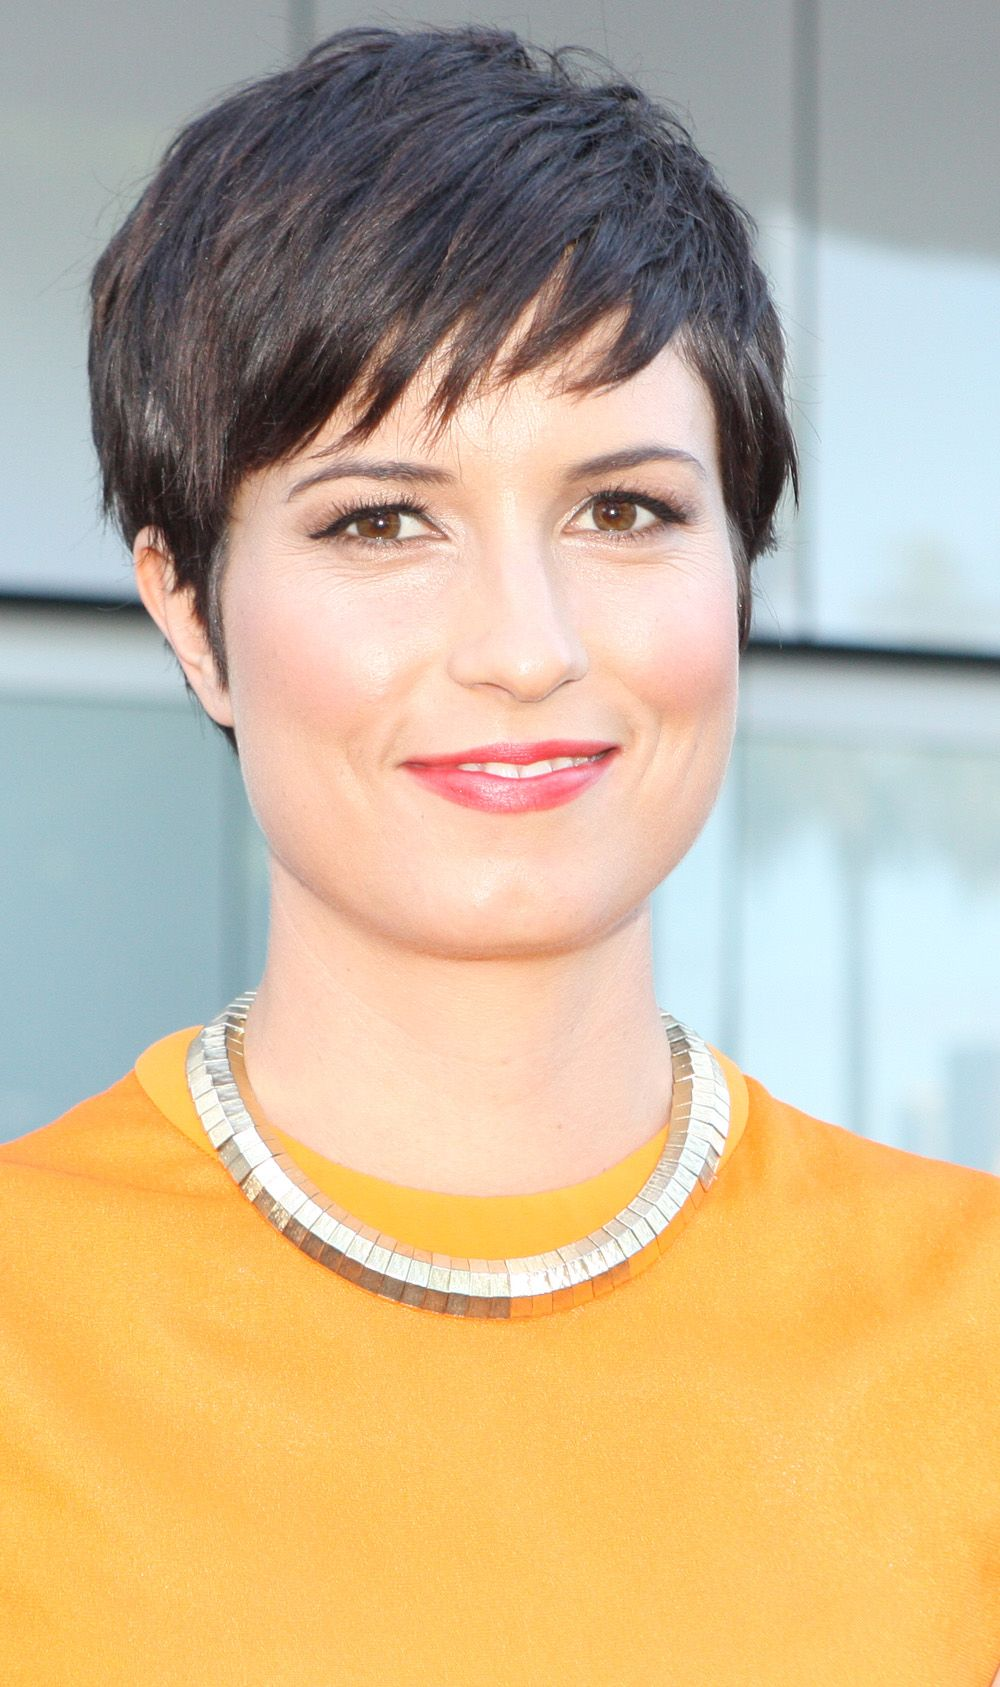 short haircuts for fine thin hair pictures | short hairstyles for thin fine hair, picture size 1000x1687 posted by ...